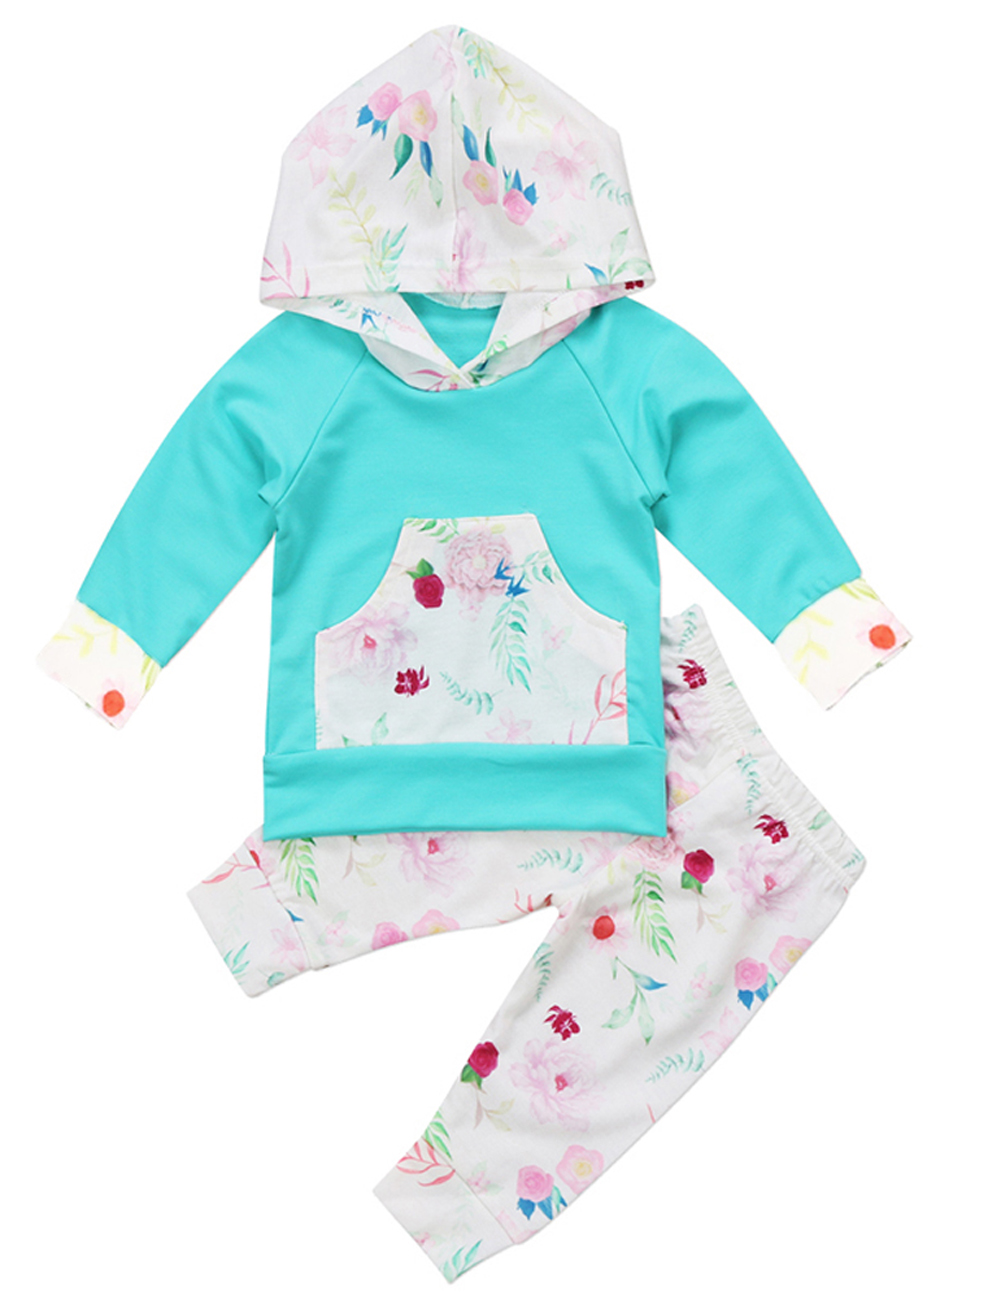 Newborn Baby Boy Girl 2pcs Outfit Long Sleeve Hoodie with Check Pocket Tops Plaid Long Pants Clothes